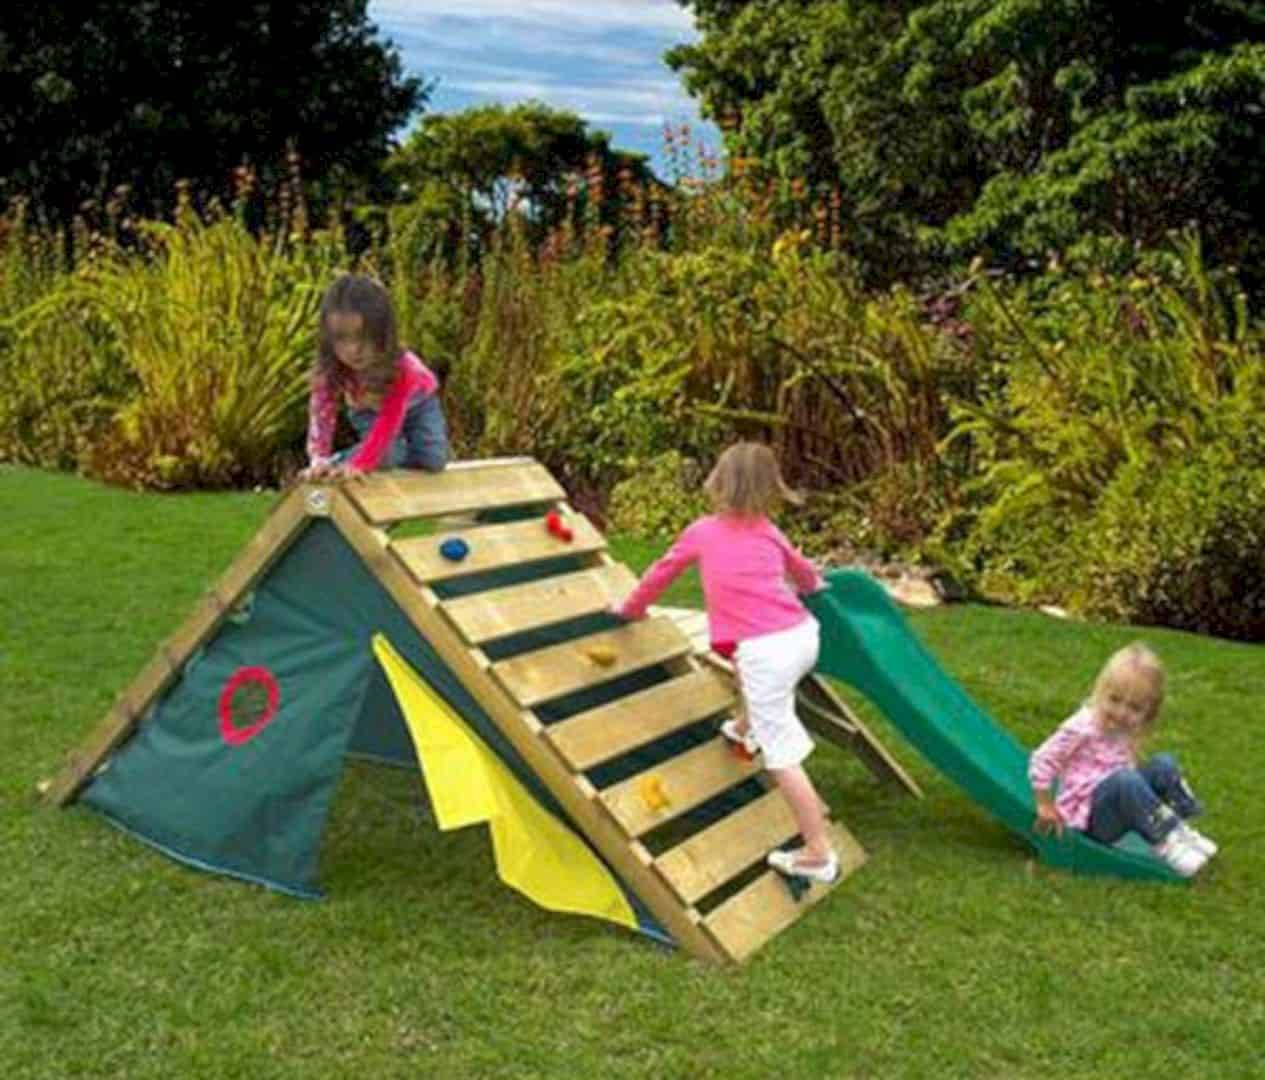 Some Nice Diy Kids Playground Ideas For Your Backyard Futurist regarding 15 Some of the Coolest Initiatives of How to Upgrade Creative Backyard Playground Ideas